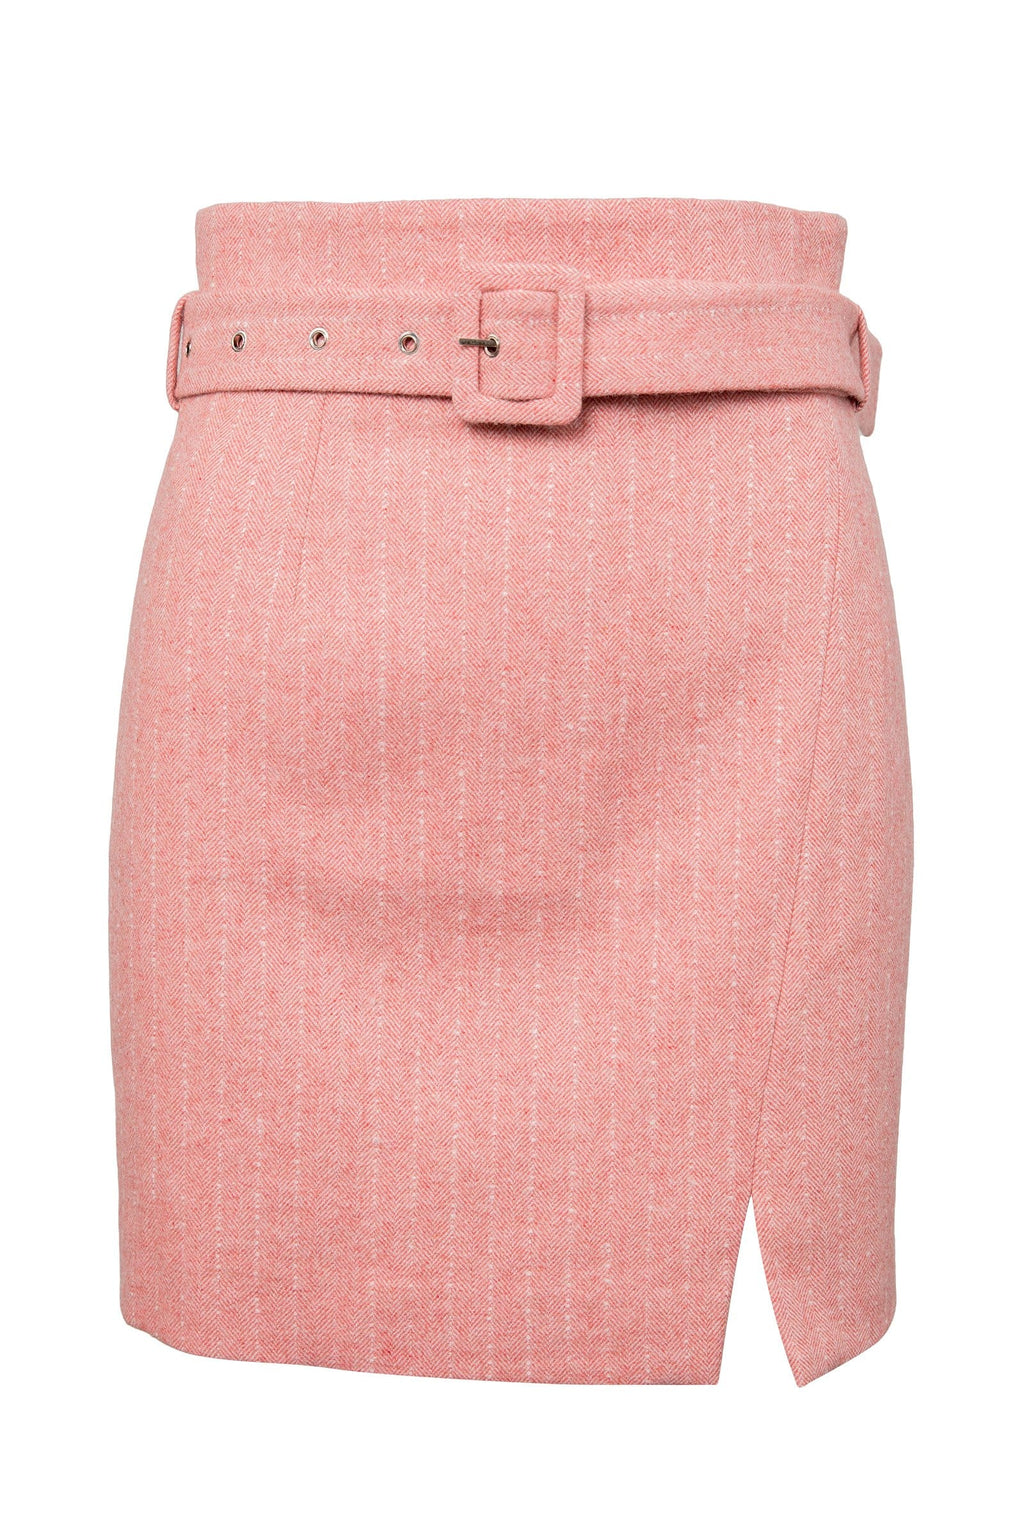 Isabelle Pink Belted Pencil Skirt by J.ING